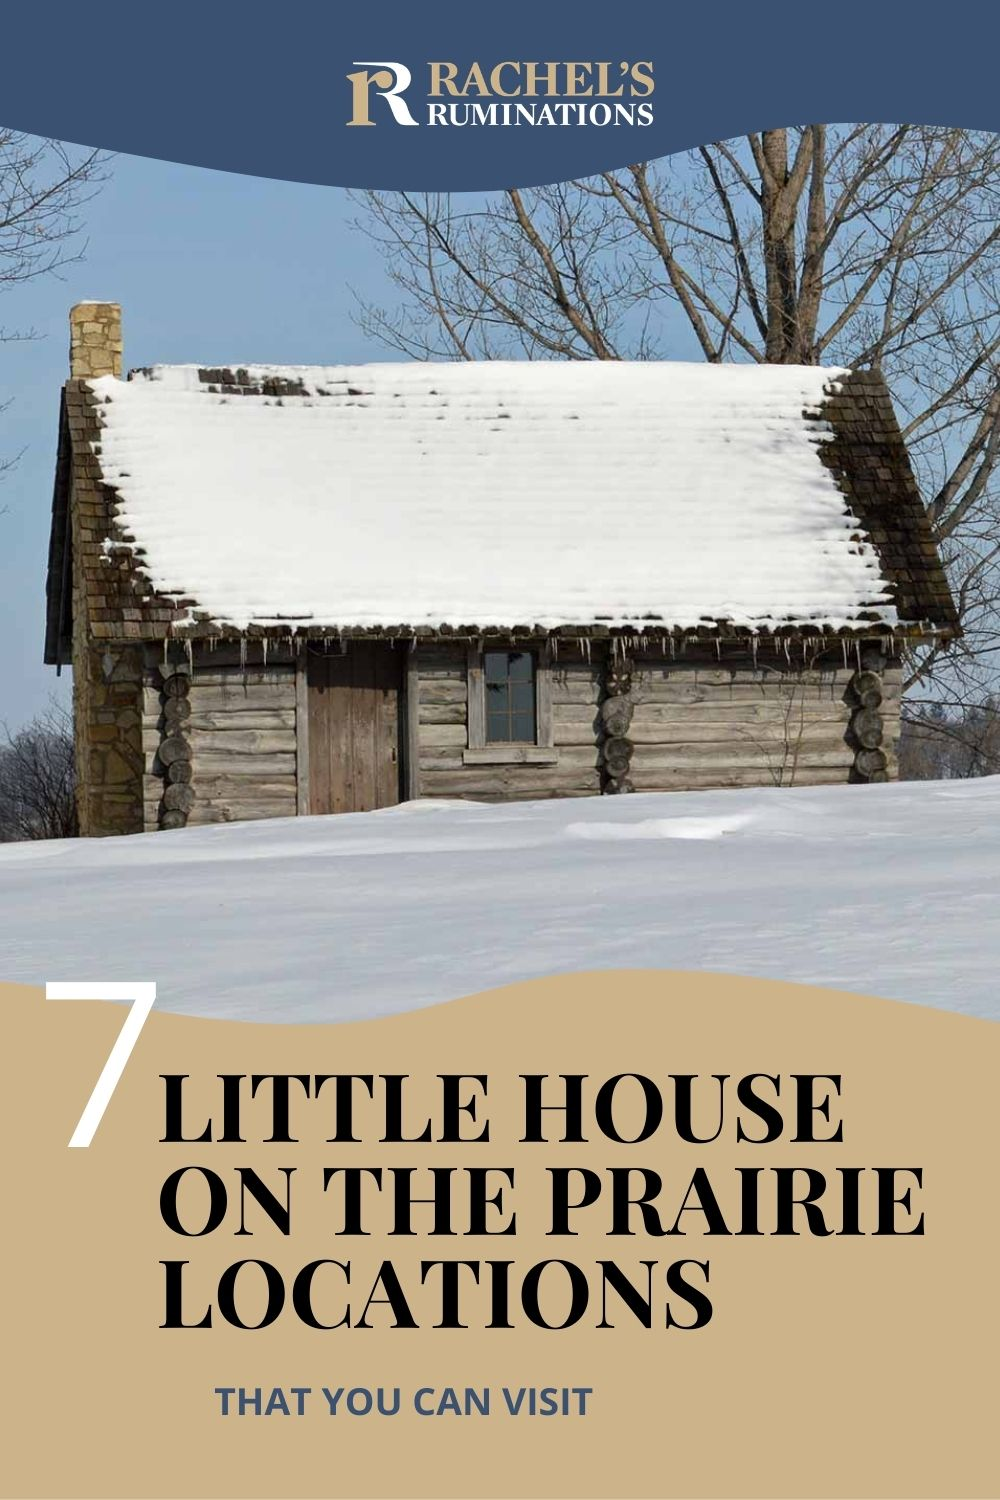 Fan of Laura Ingalls Wilder? Here's a list (and a map!) of all the Little House on the Prairie locations and what you can see at each one! via @rachelsruminations